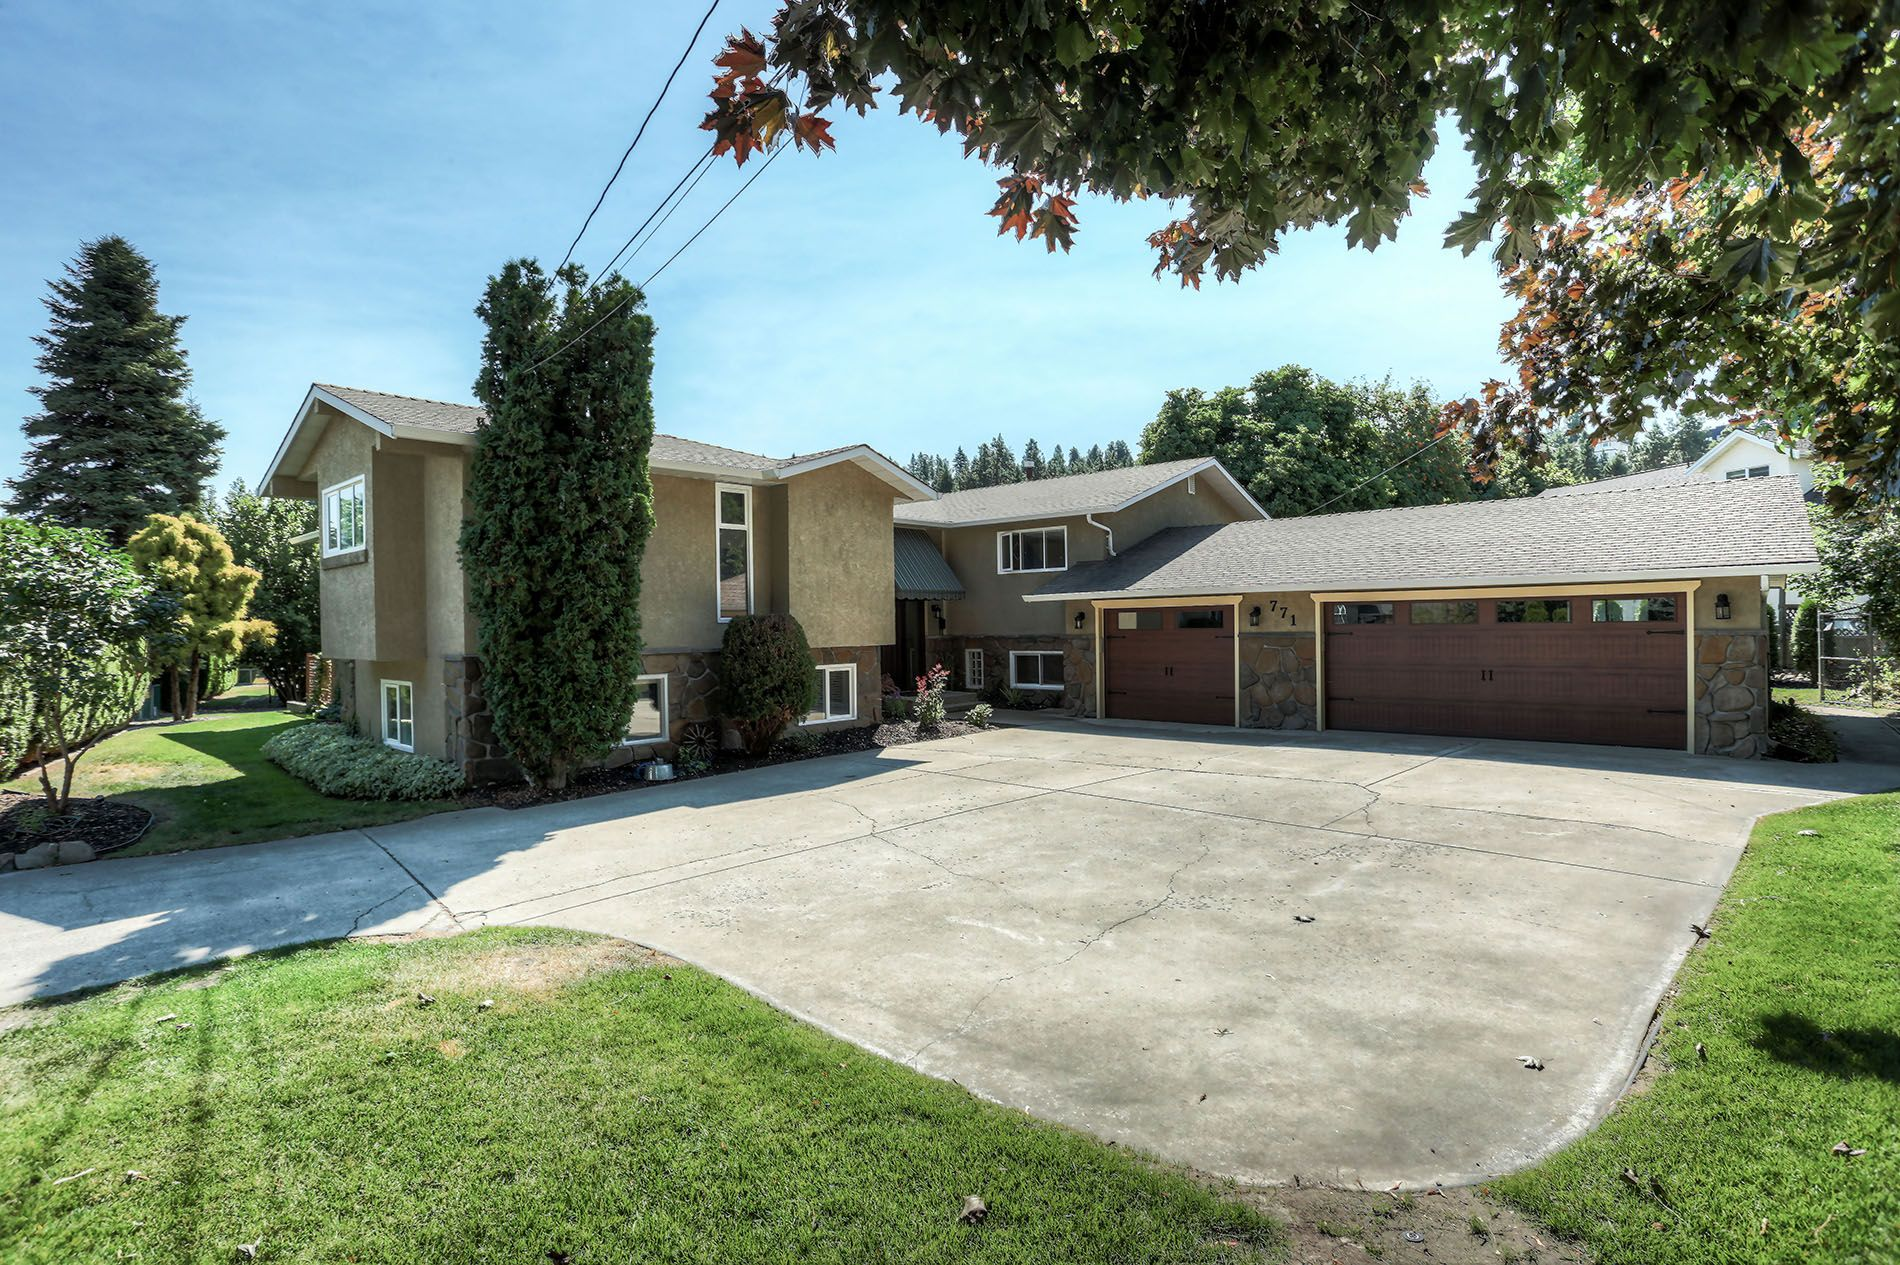 Main Photo: 771 Torrs Road in Kelowna: Lower Mission House for sale (Central Okanagan)  : MLS®# 10179662